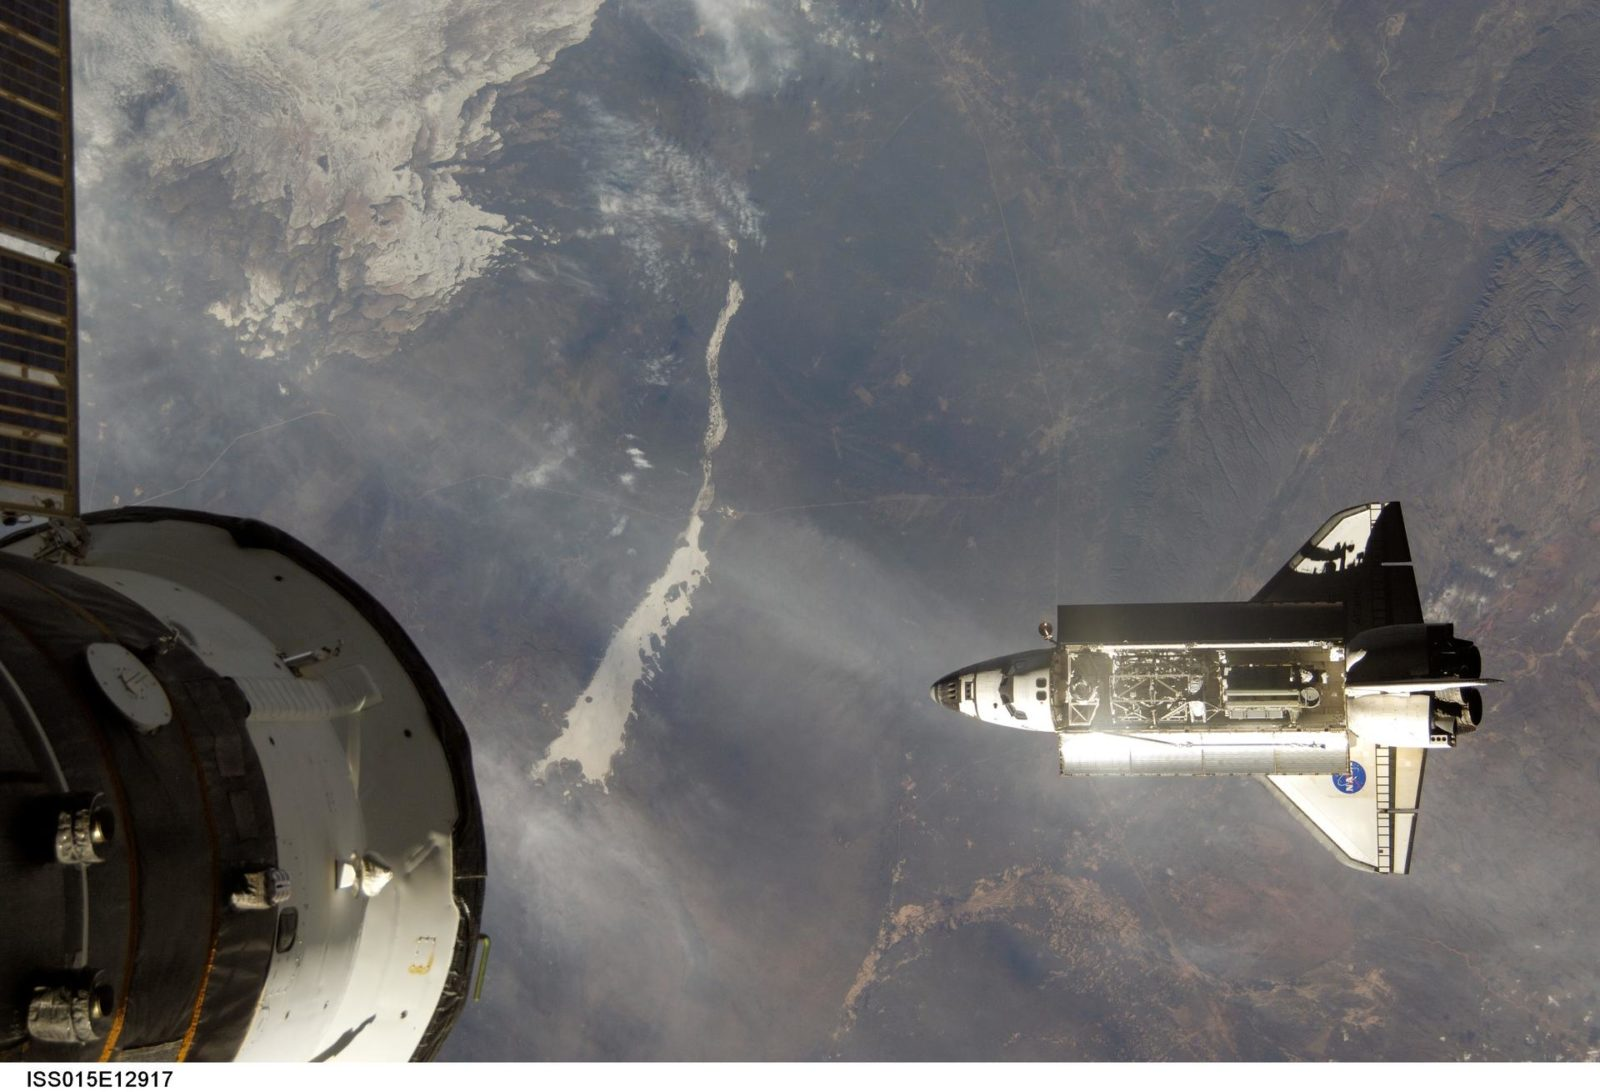 View of Atlantis on approach to the ISS for Expedition 15/STS-117 Joint Operations